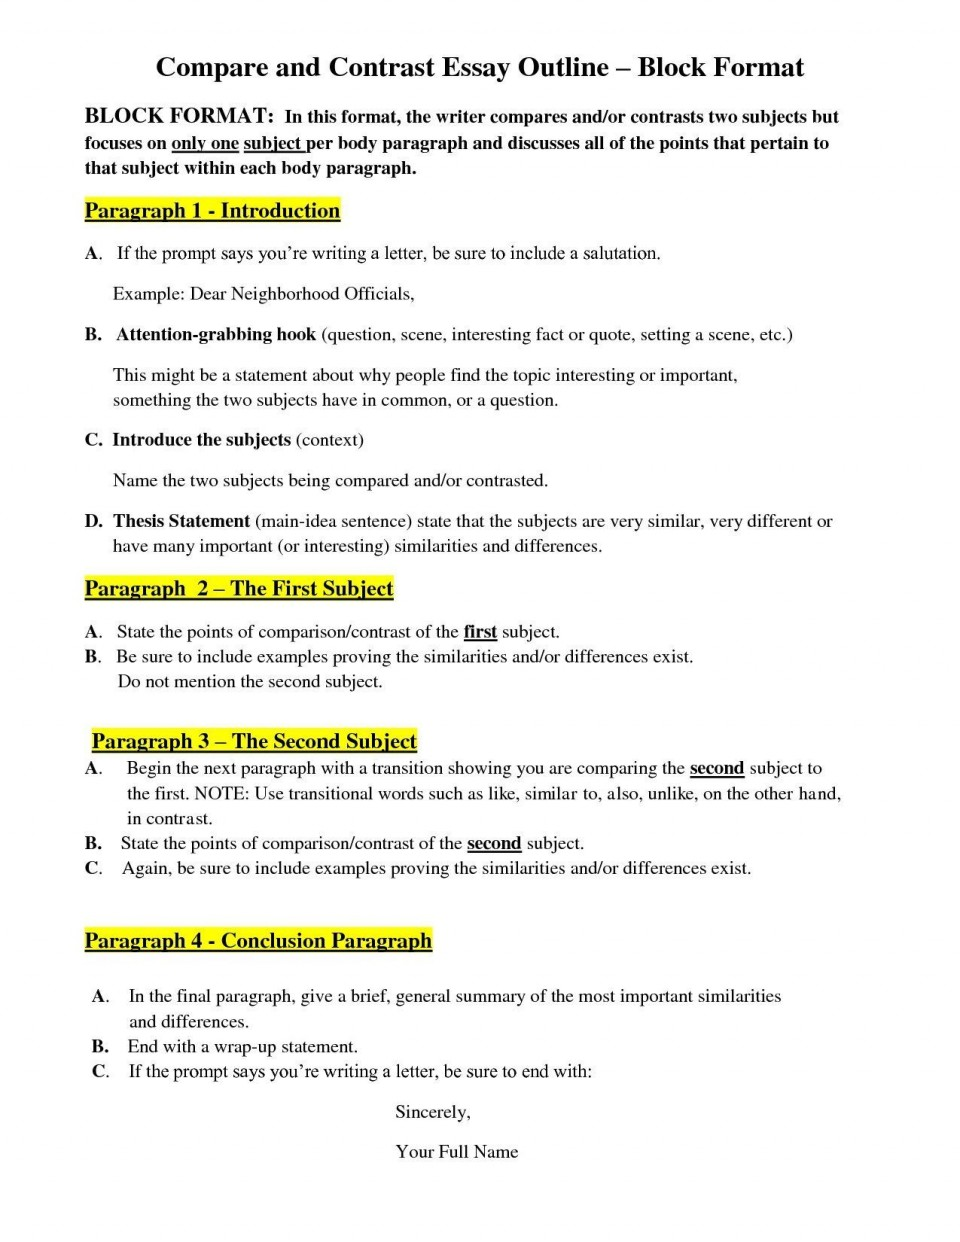 007 Compare And Contrast Essay Frightening Prompts 5th Grade Rubric College Ideas 12th 960